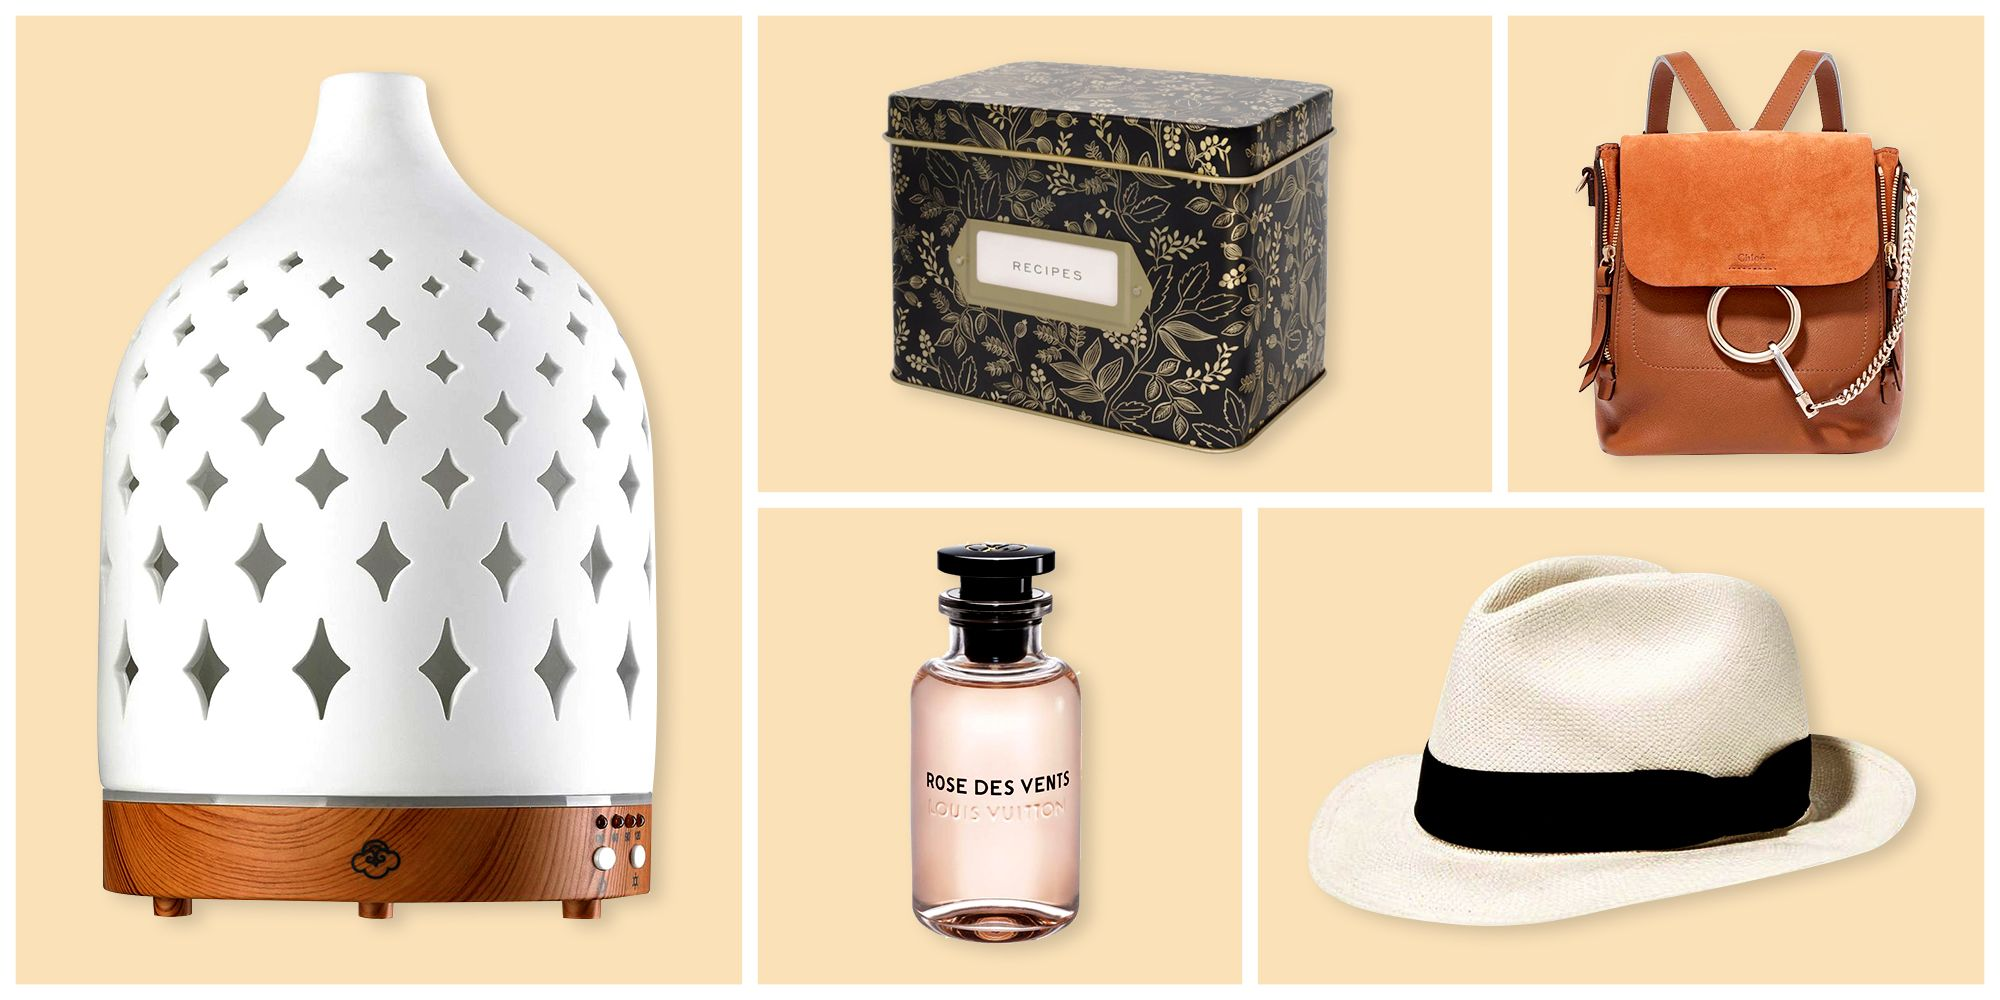 64 Best Gifts For Mom 2018